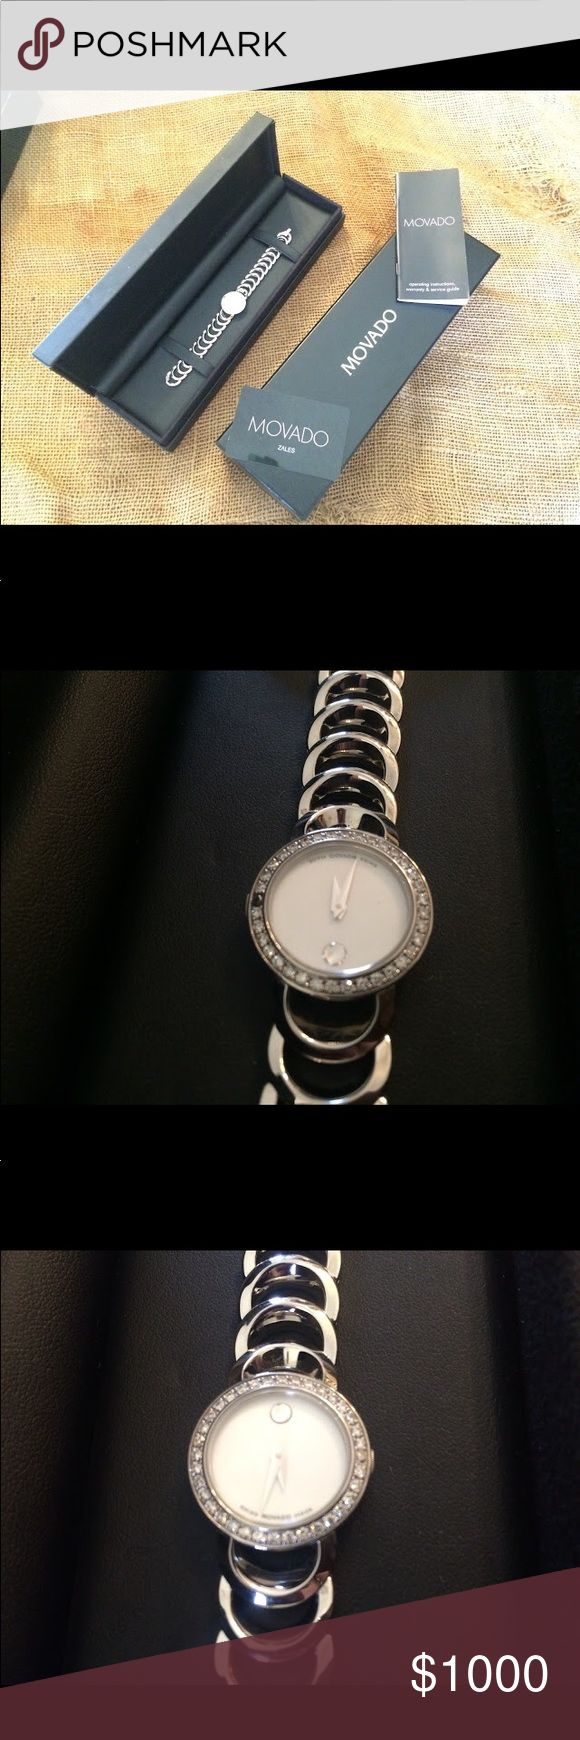 Movado watch. New with original box. Never worn Beautiful movado watch! This has never been worn and is still in its original box. Movado Accessories Watches